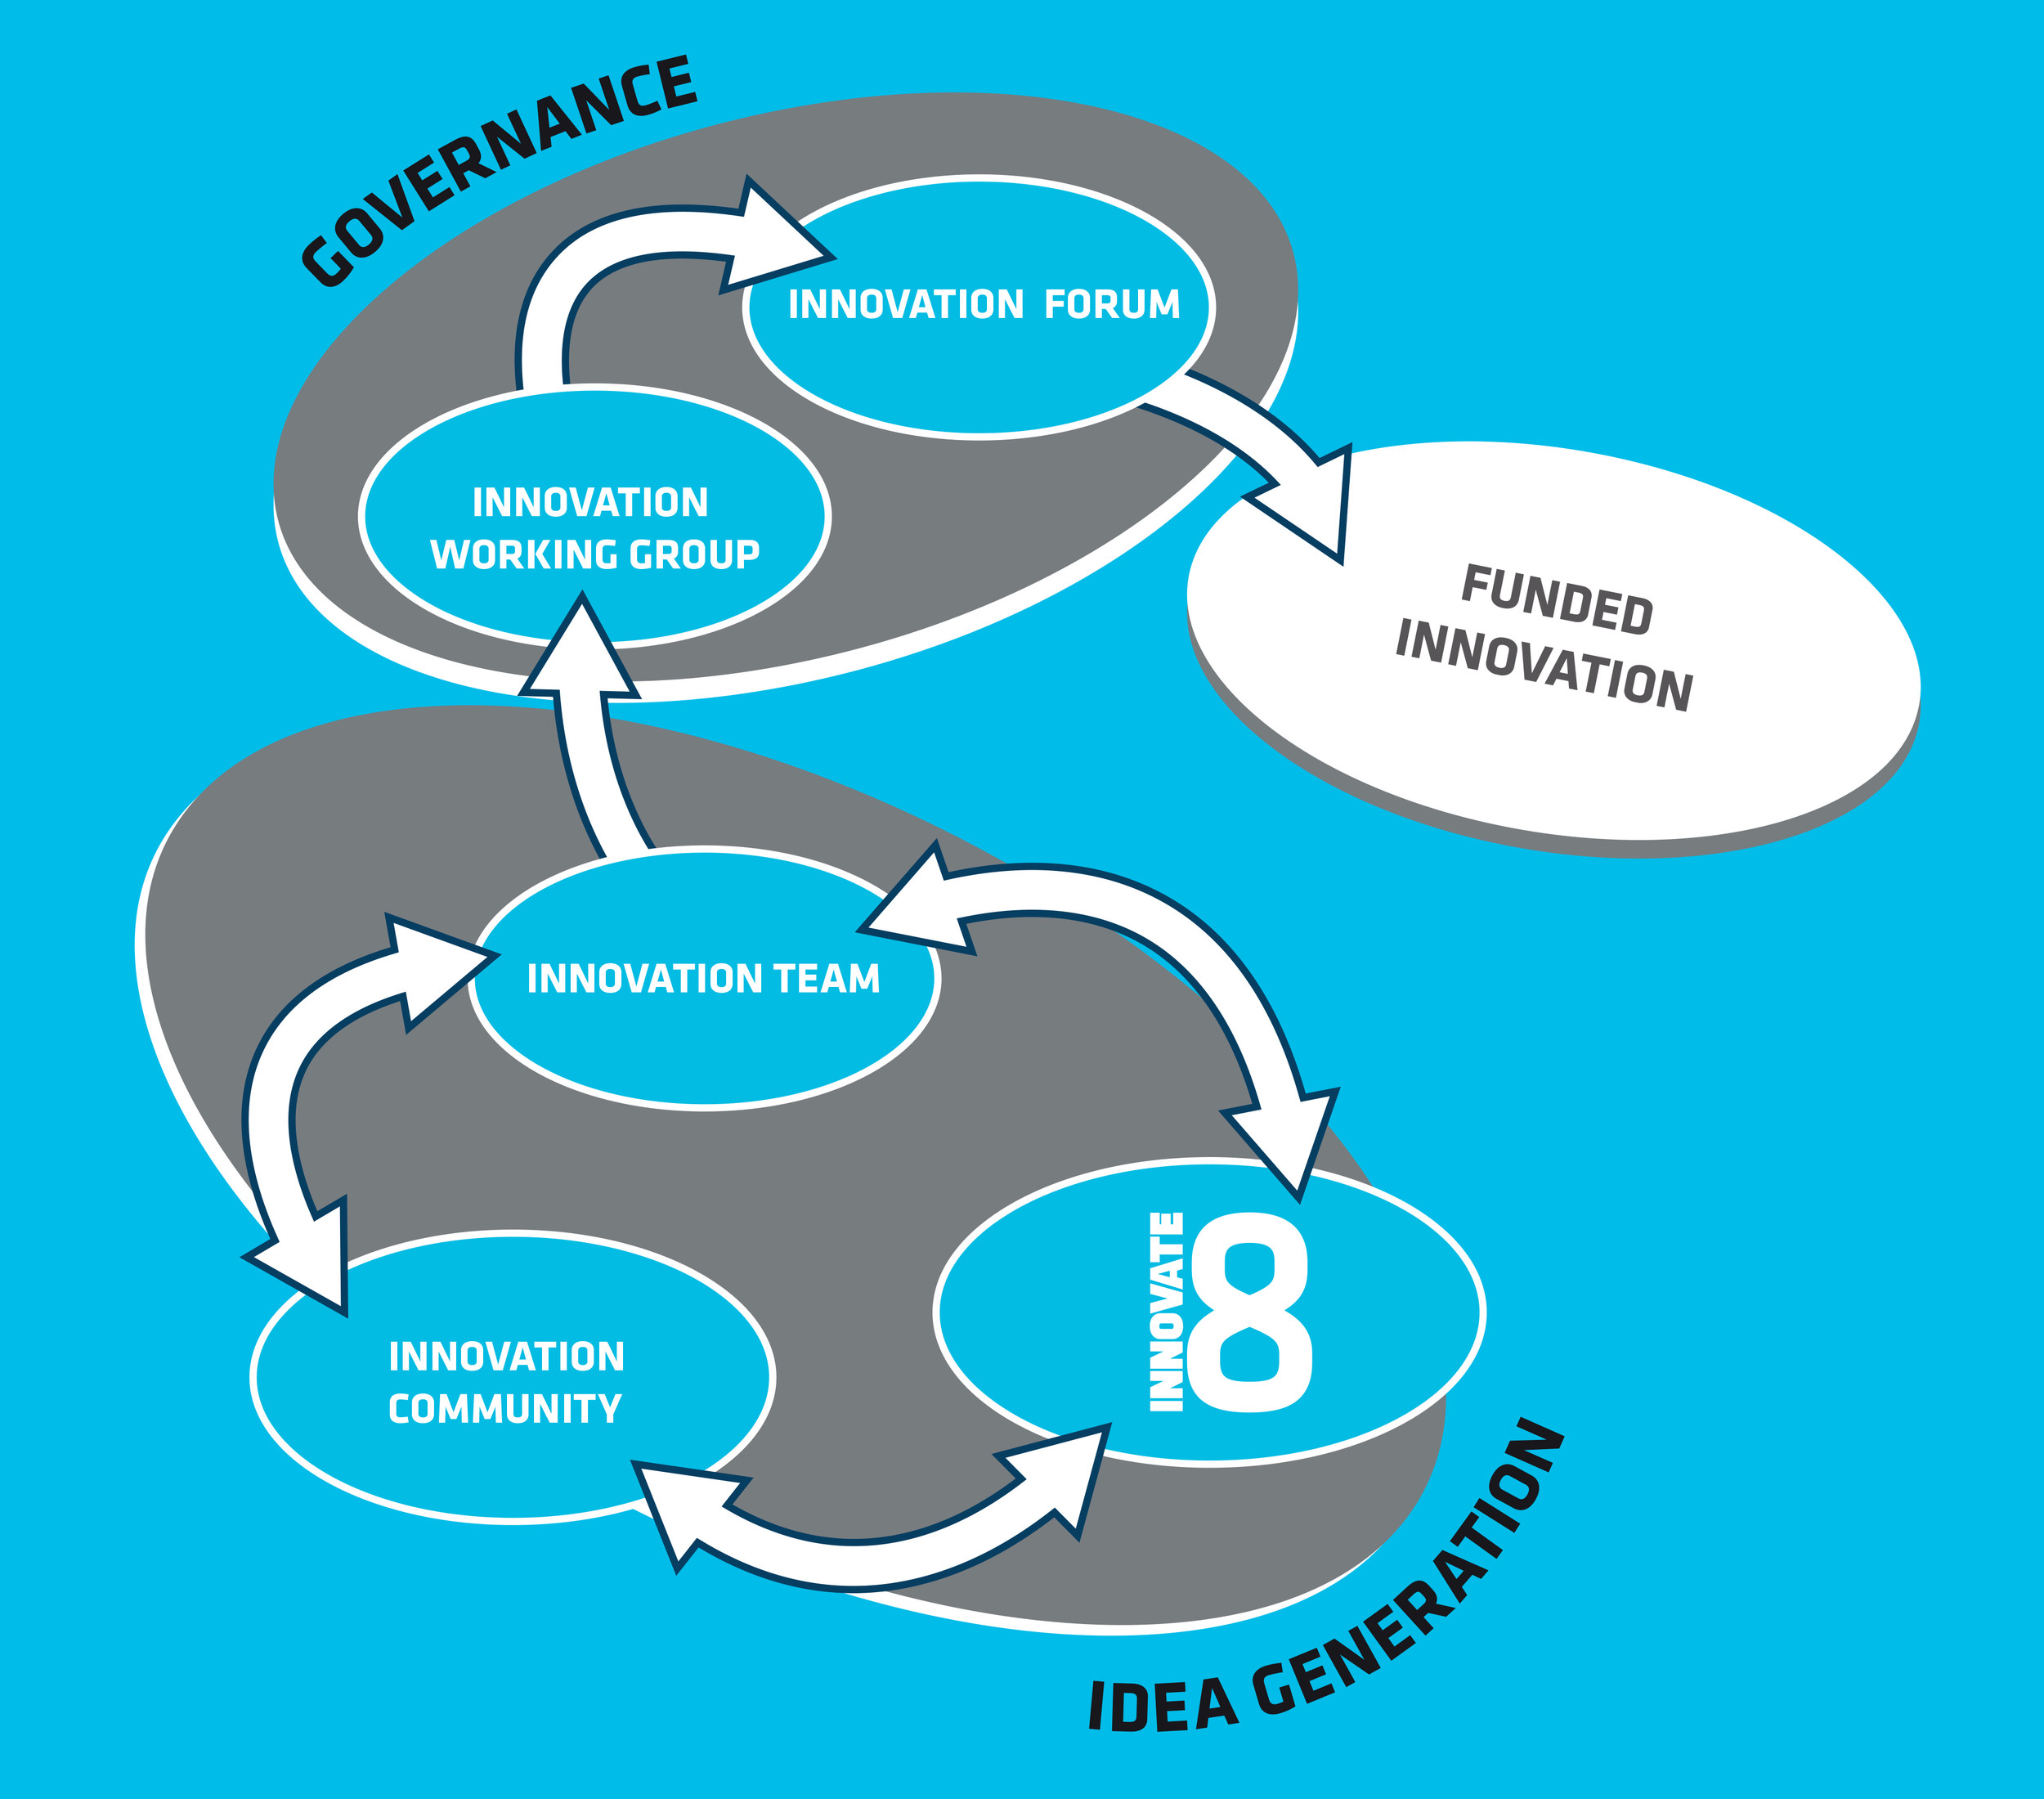 Innovation-structure-and-governance-graphic_208434